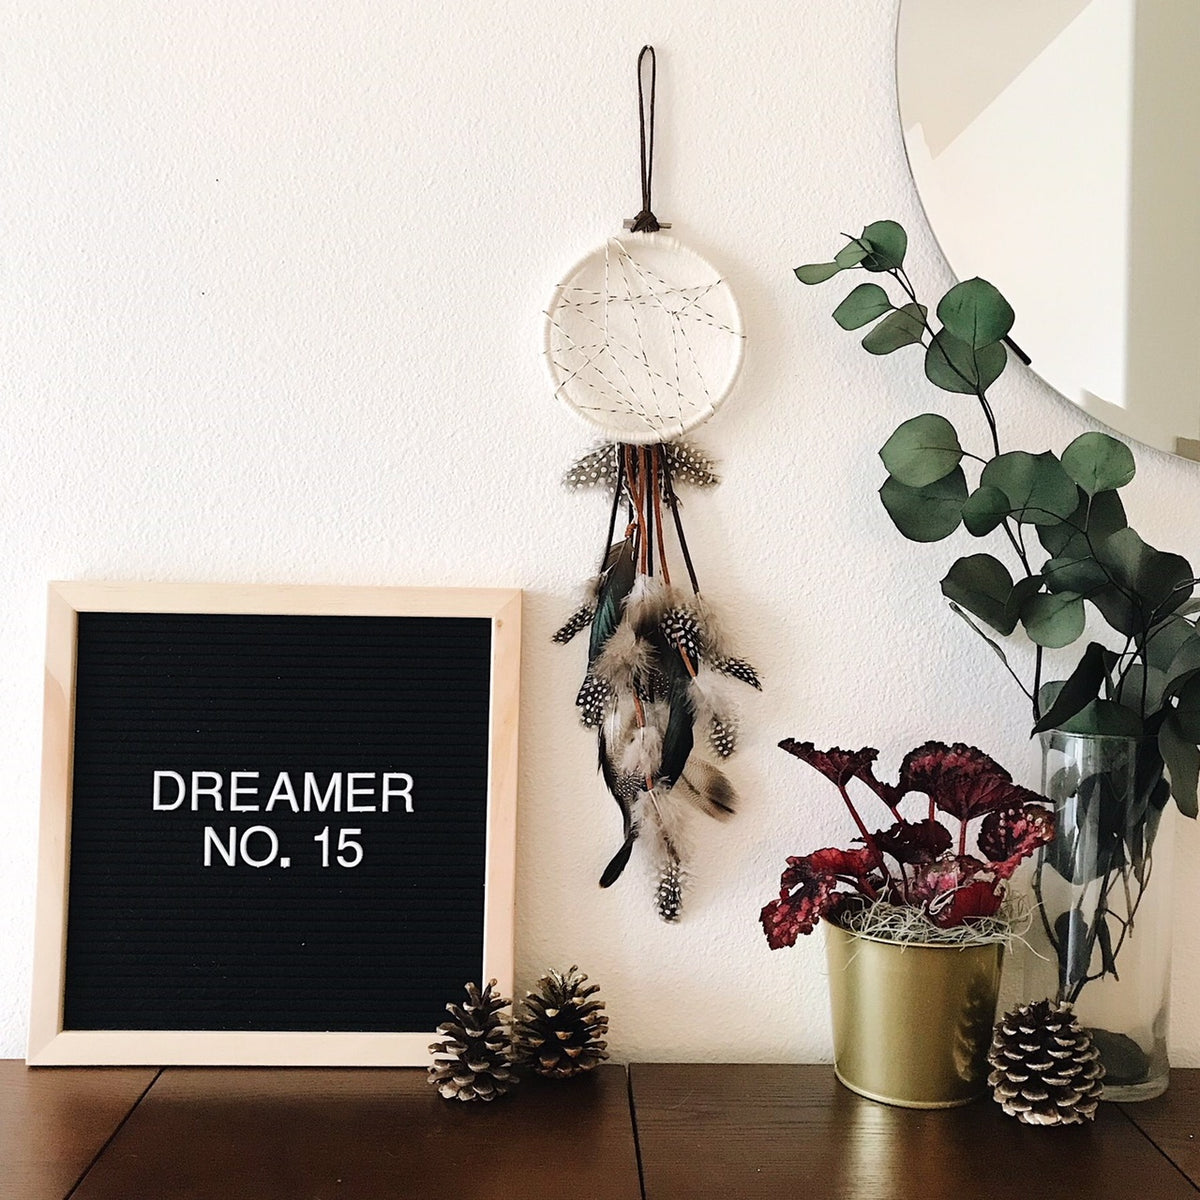 Dreamer No. 15 | 100 Days of Dreamers